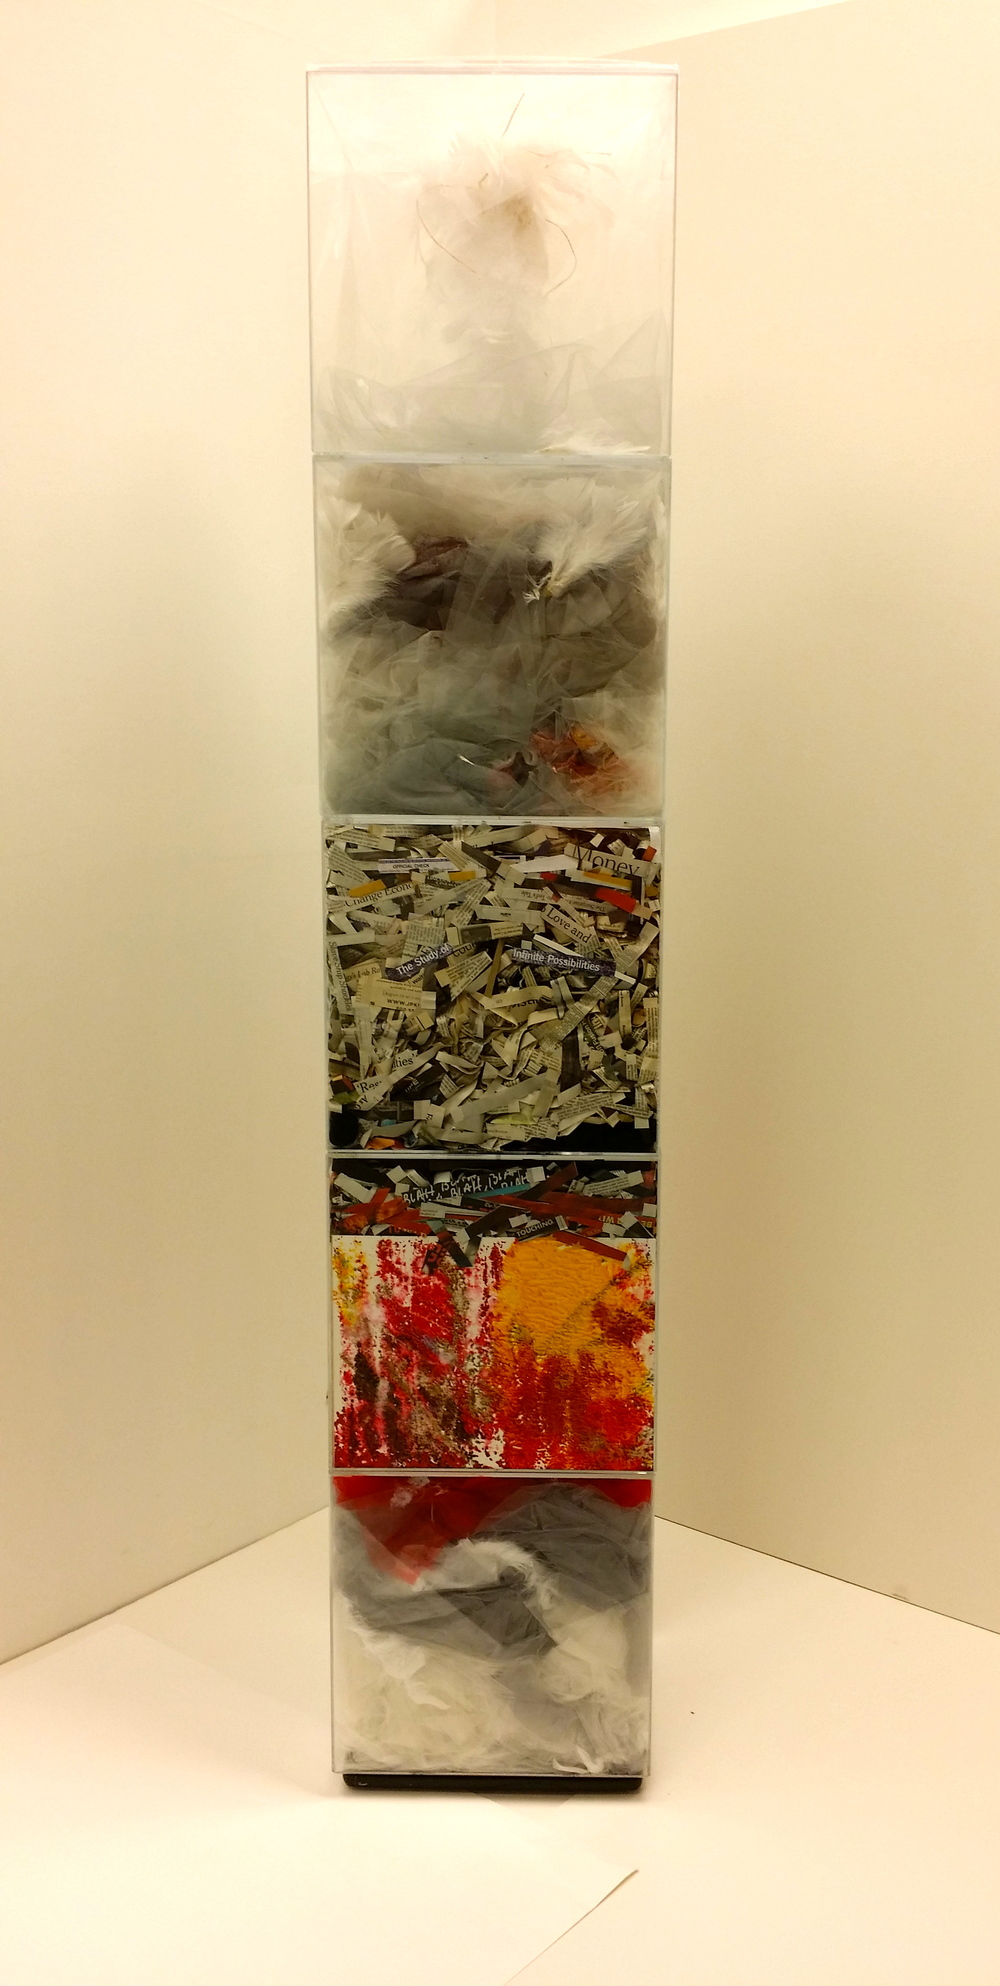 An Hypothesis, 2015  12 x 12 x 62 inches  Five acrylic cubes containing dyed gray gauze, lightweight tulle, feathers, newspaper clippings, textured acrylic drawings, and dripped paint, arranged in the boxes so as to fill and modify their space. Each cube defines a separate space, yet the content of each bleeds into the next, connecting them into the whole. While the contents can be seen as unrelated, they can also be perceived as one in essence. The stacked boxes suggest an orderly sequence, hinting at a logical cycle in which the materials are arranged.